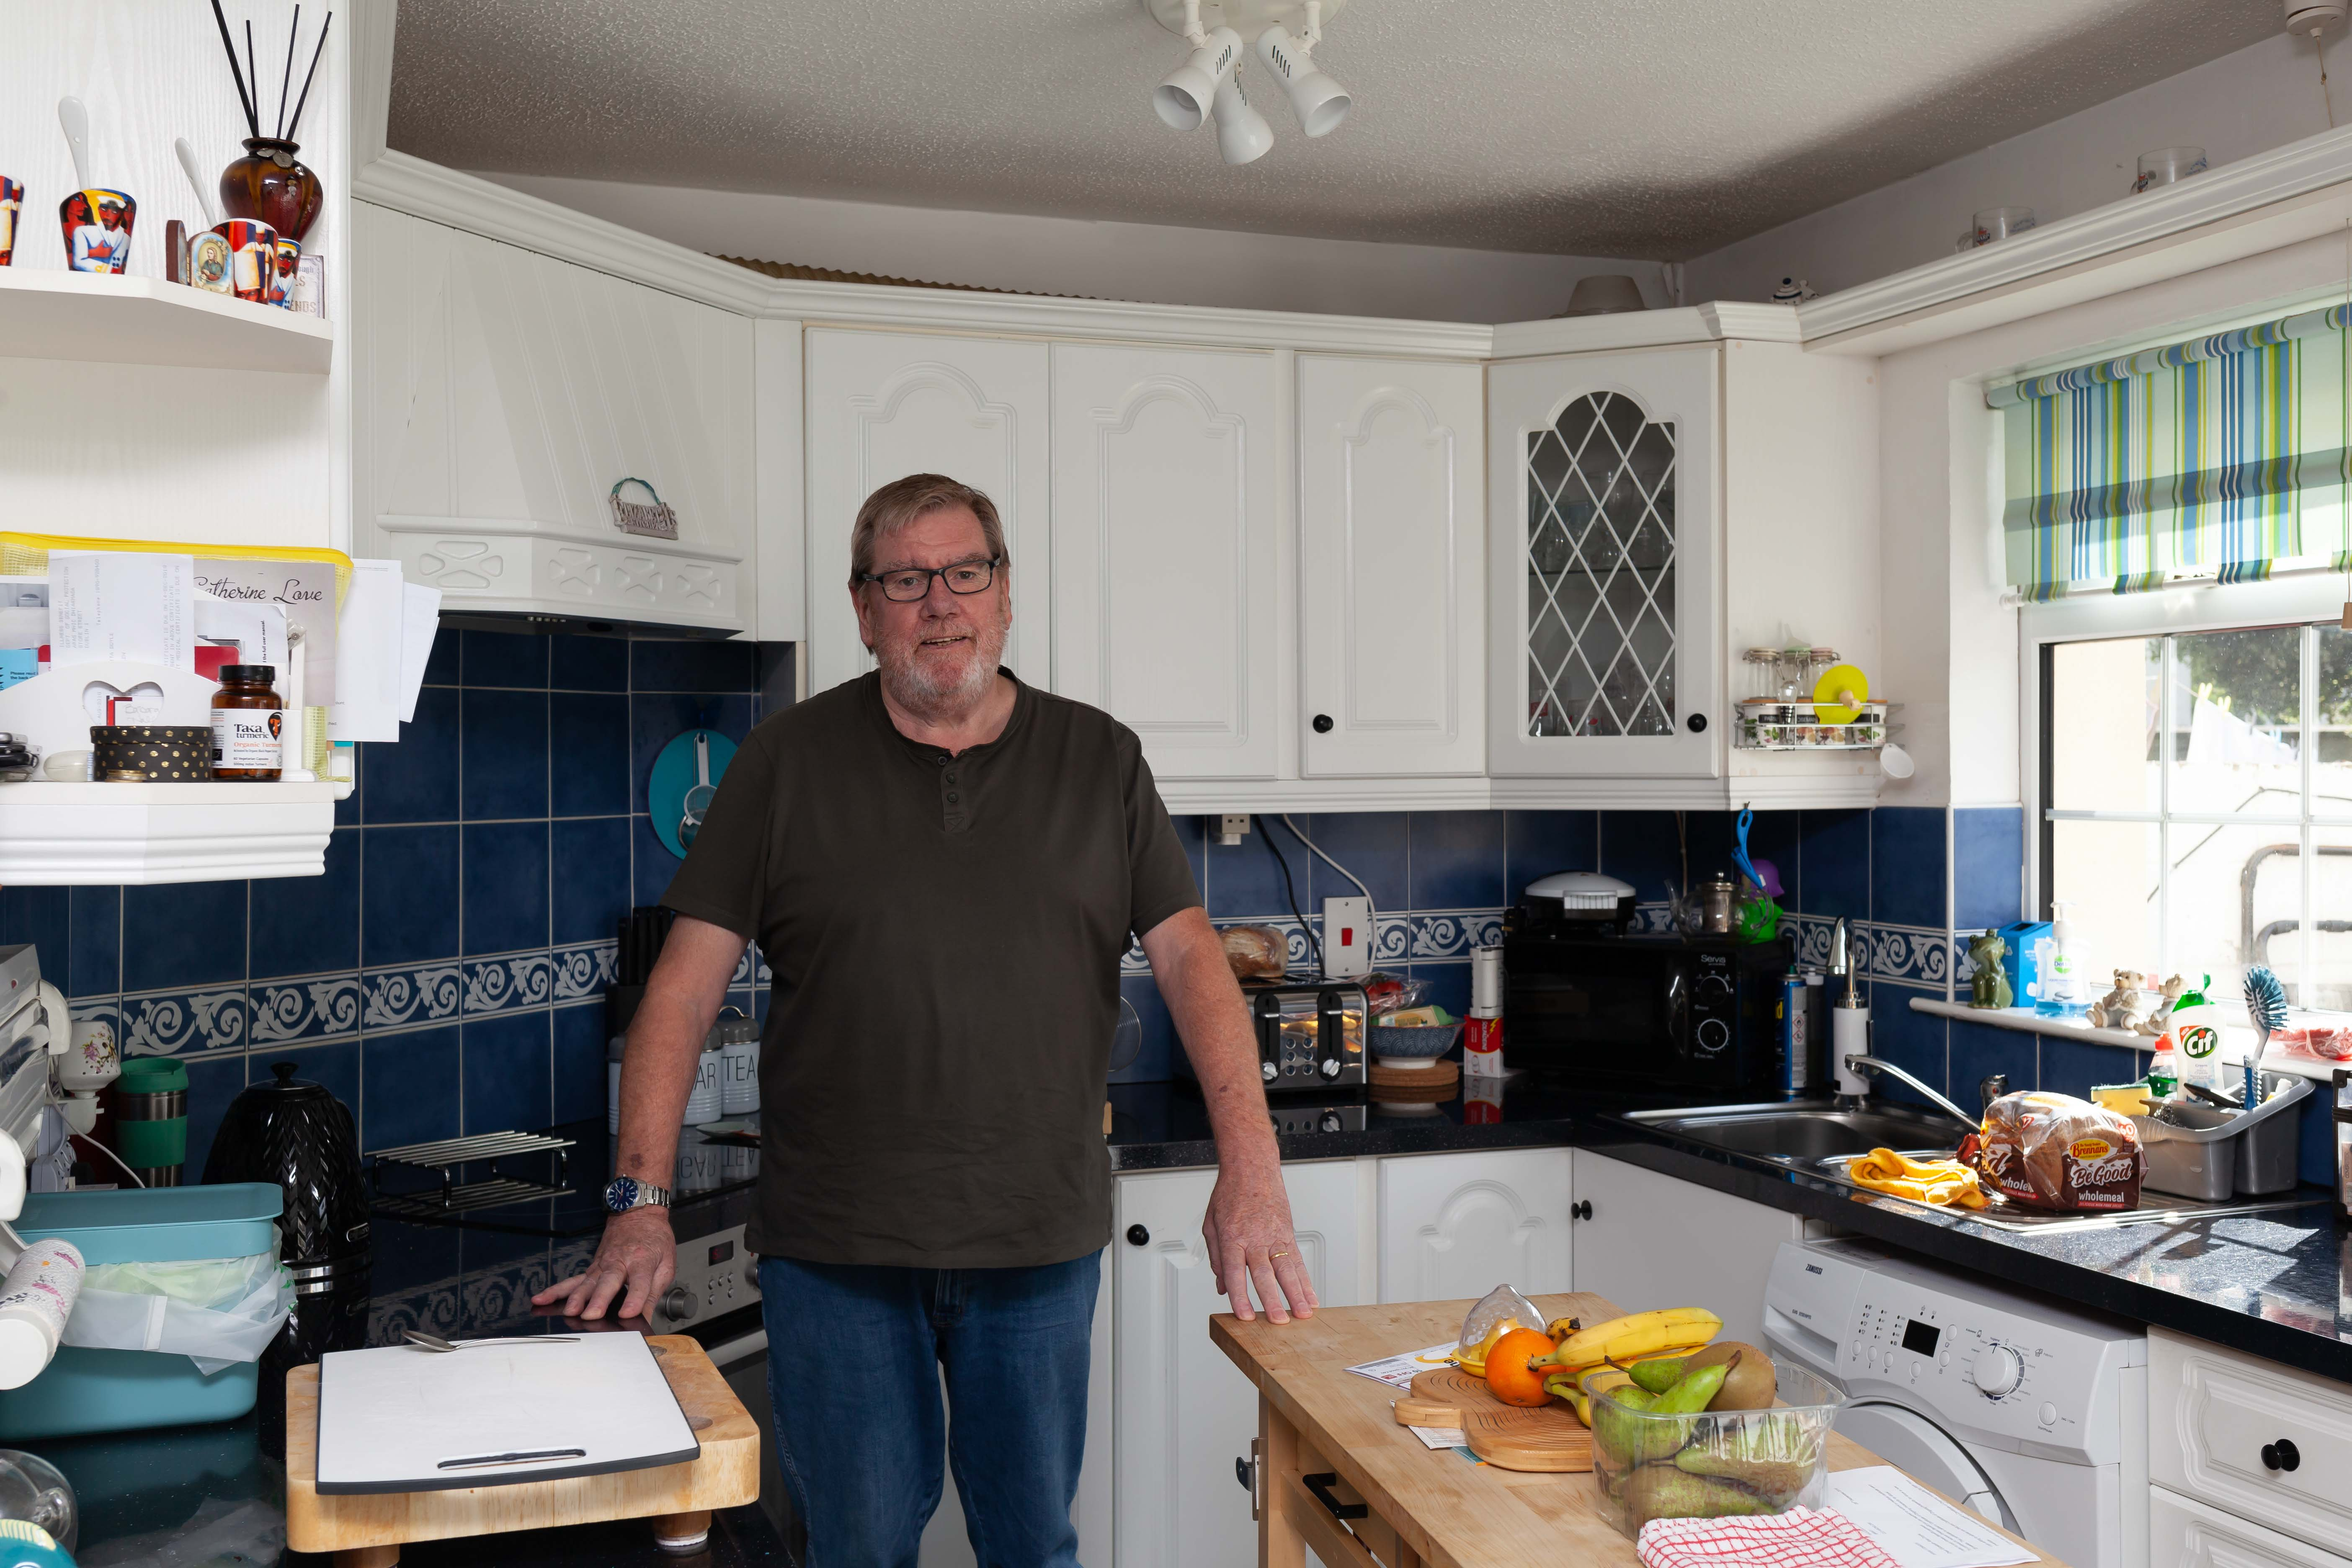 Man standing in kitchen with external wall insulation